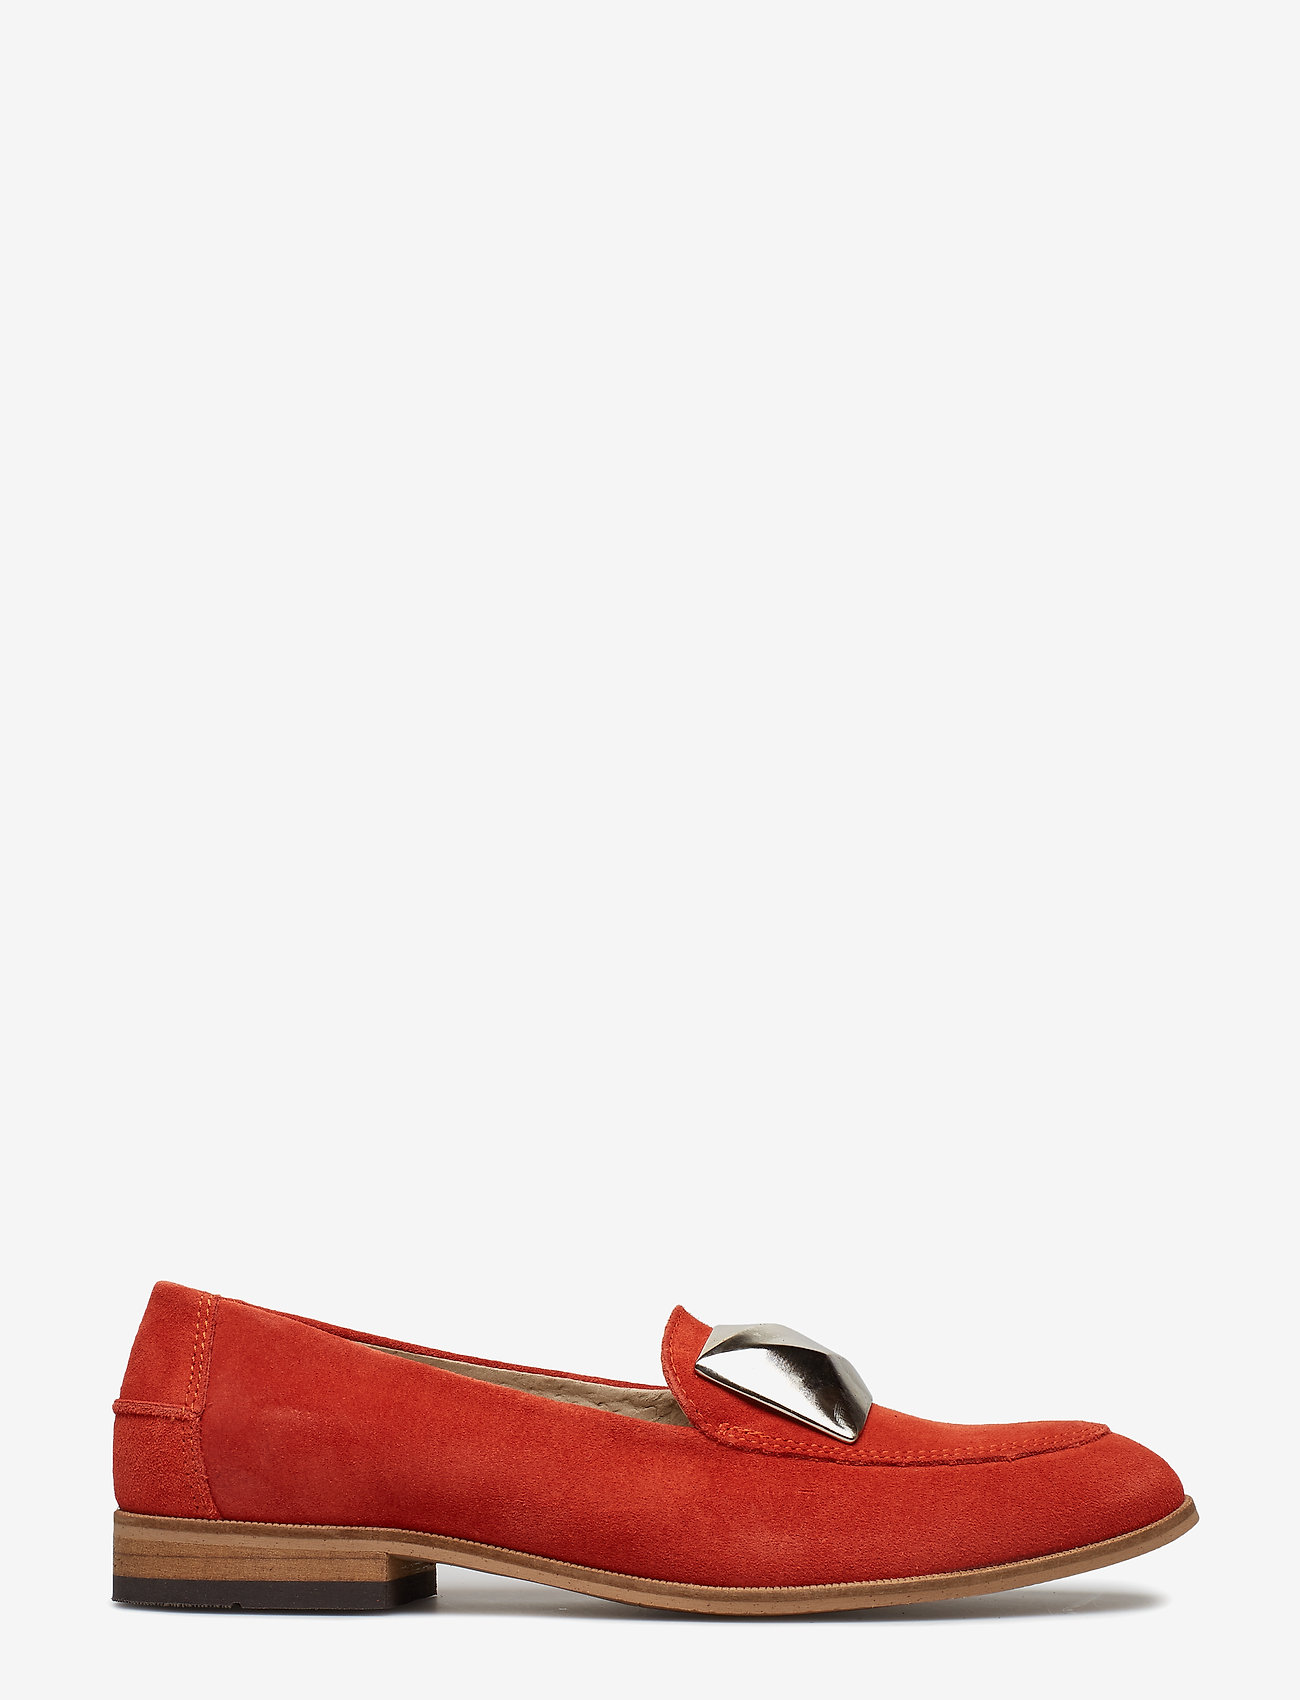 Shoe The Bear JUNO STONE - Flache Schuhe CORAL RED - Schuhe Billige